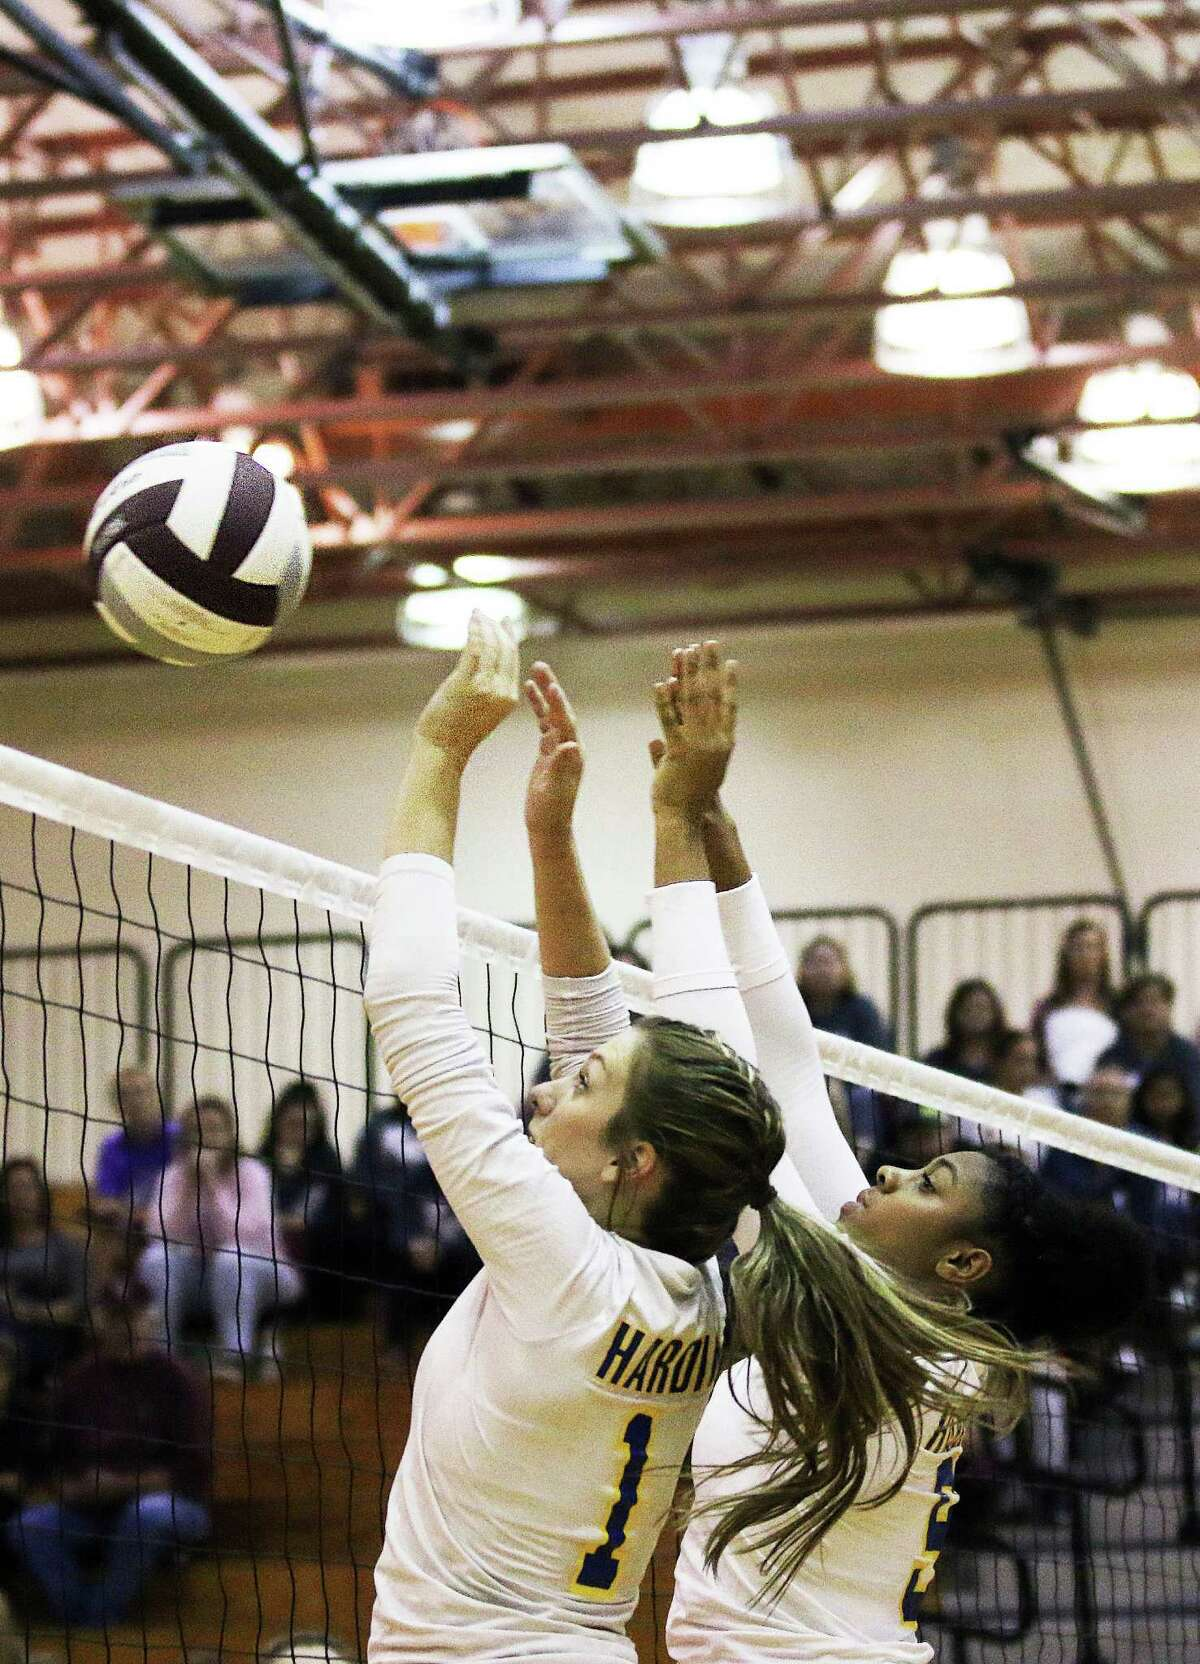 Shayla Fisher and NaÂ?'Kendra Ellis go up to try and block a kill by the Brahmaettes in the Regional Quarterfinal volleyball playoffs.